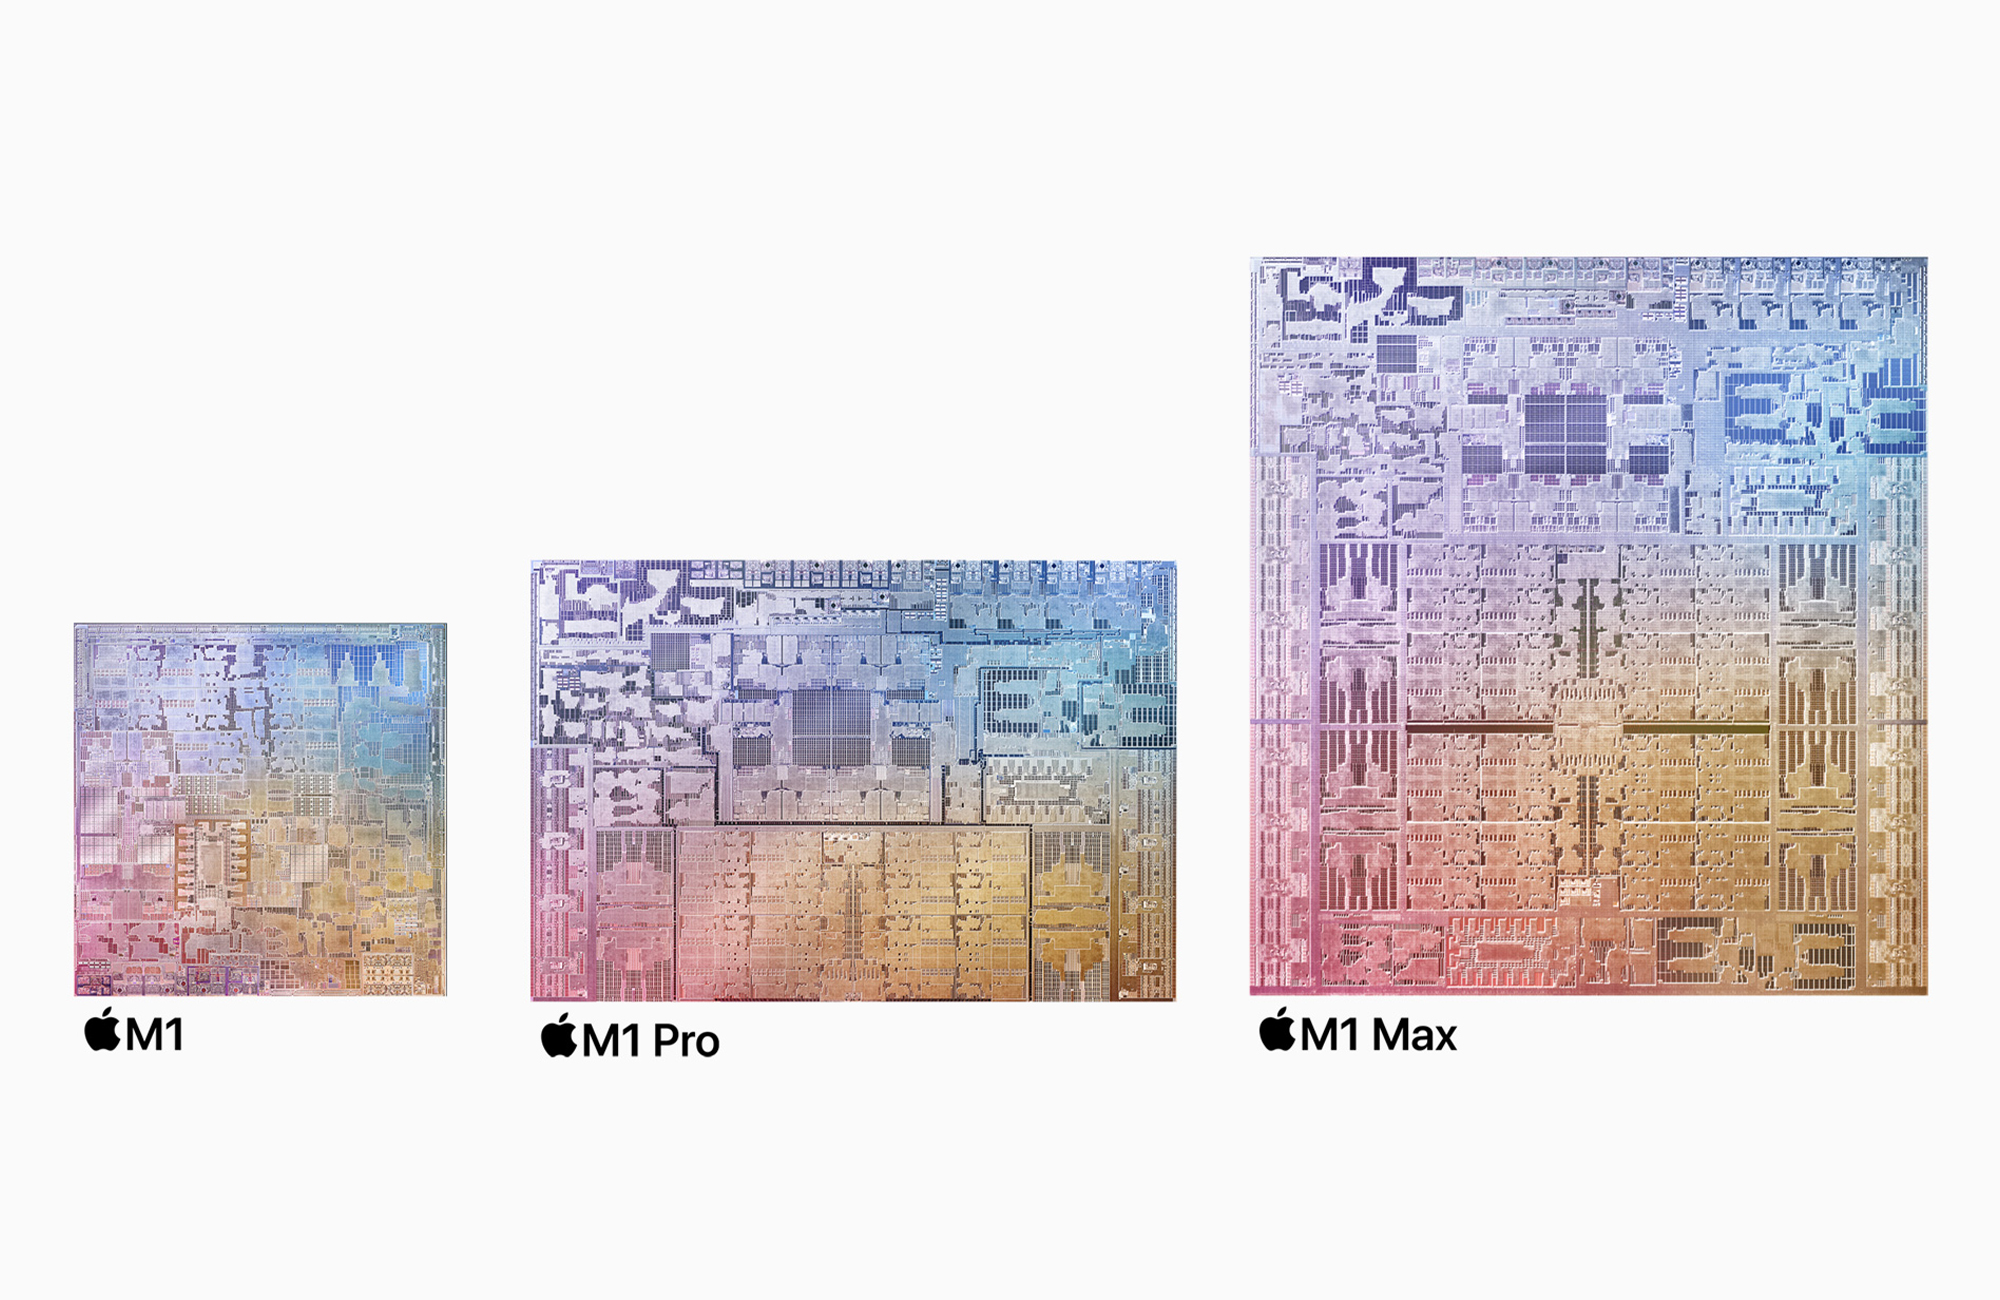 Apple M1 Pro and M1 Max chip